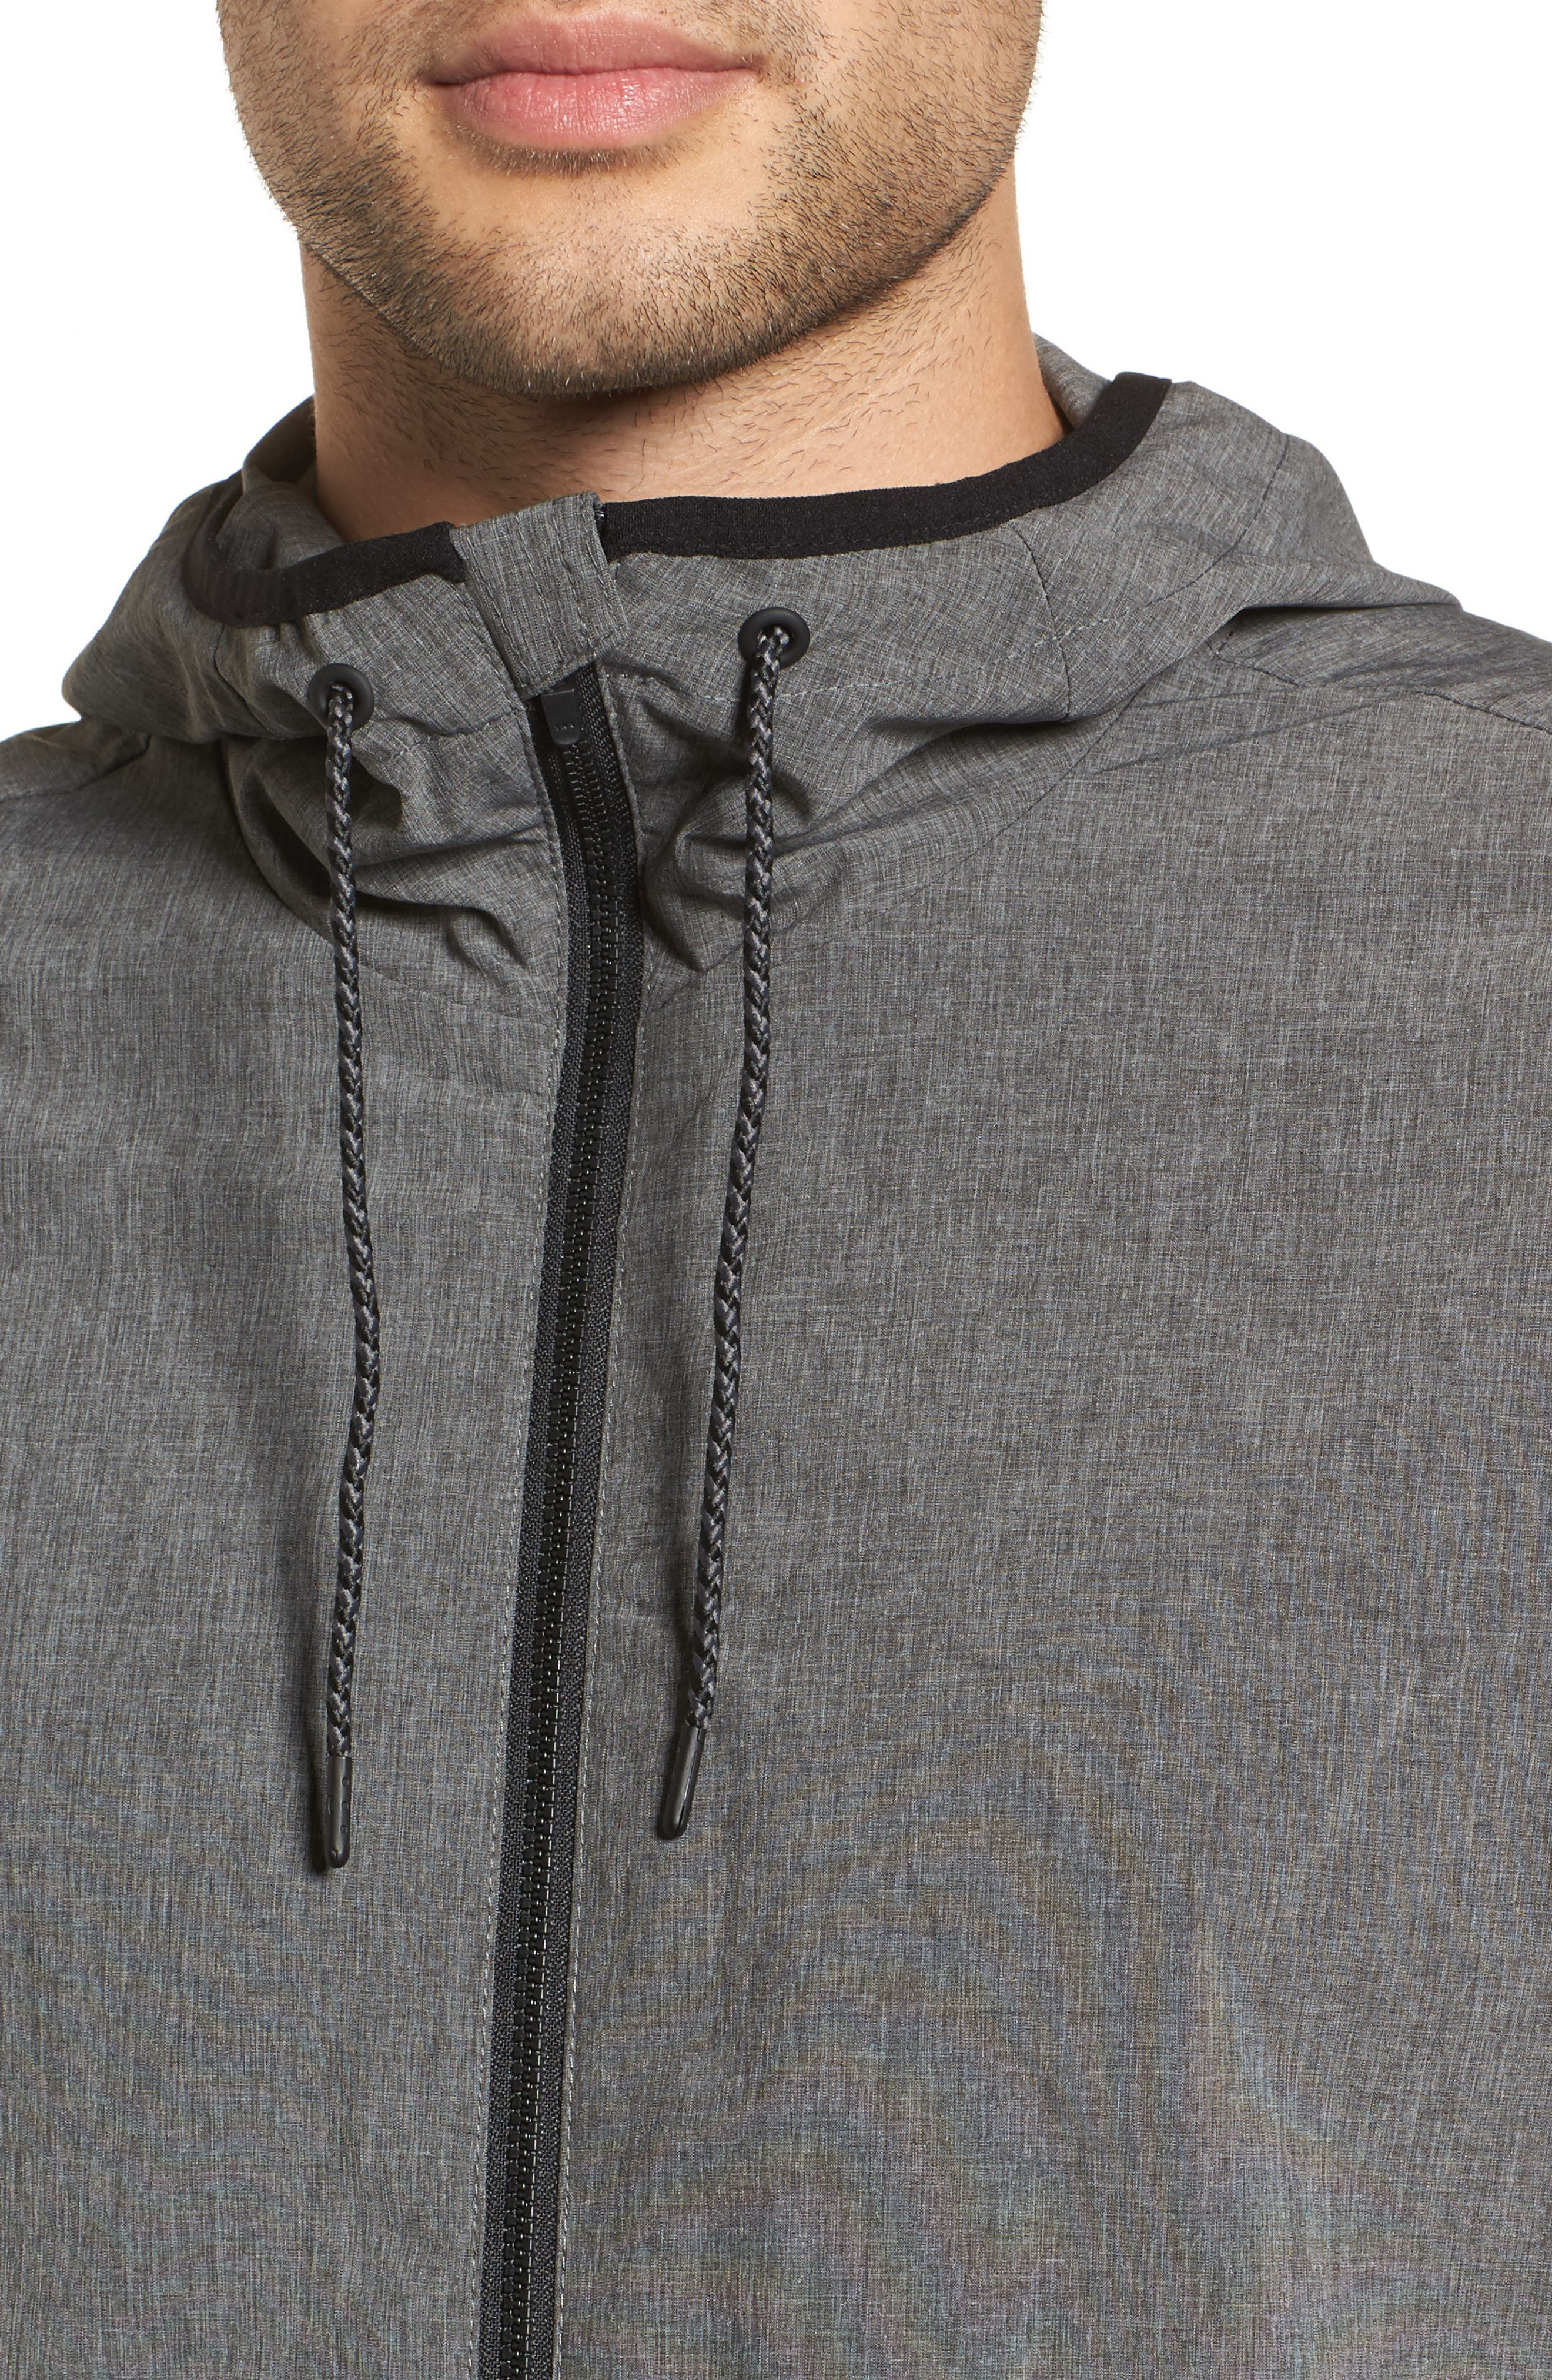 Protect Stretch 2.0 Jacket,                             Alternate thumbnail 4, color,                             010